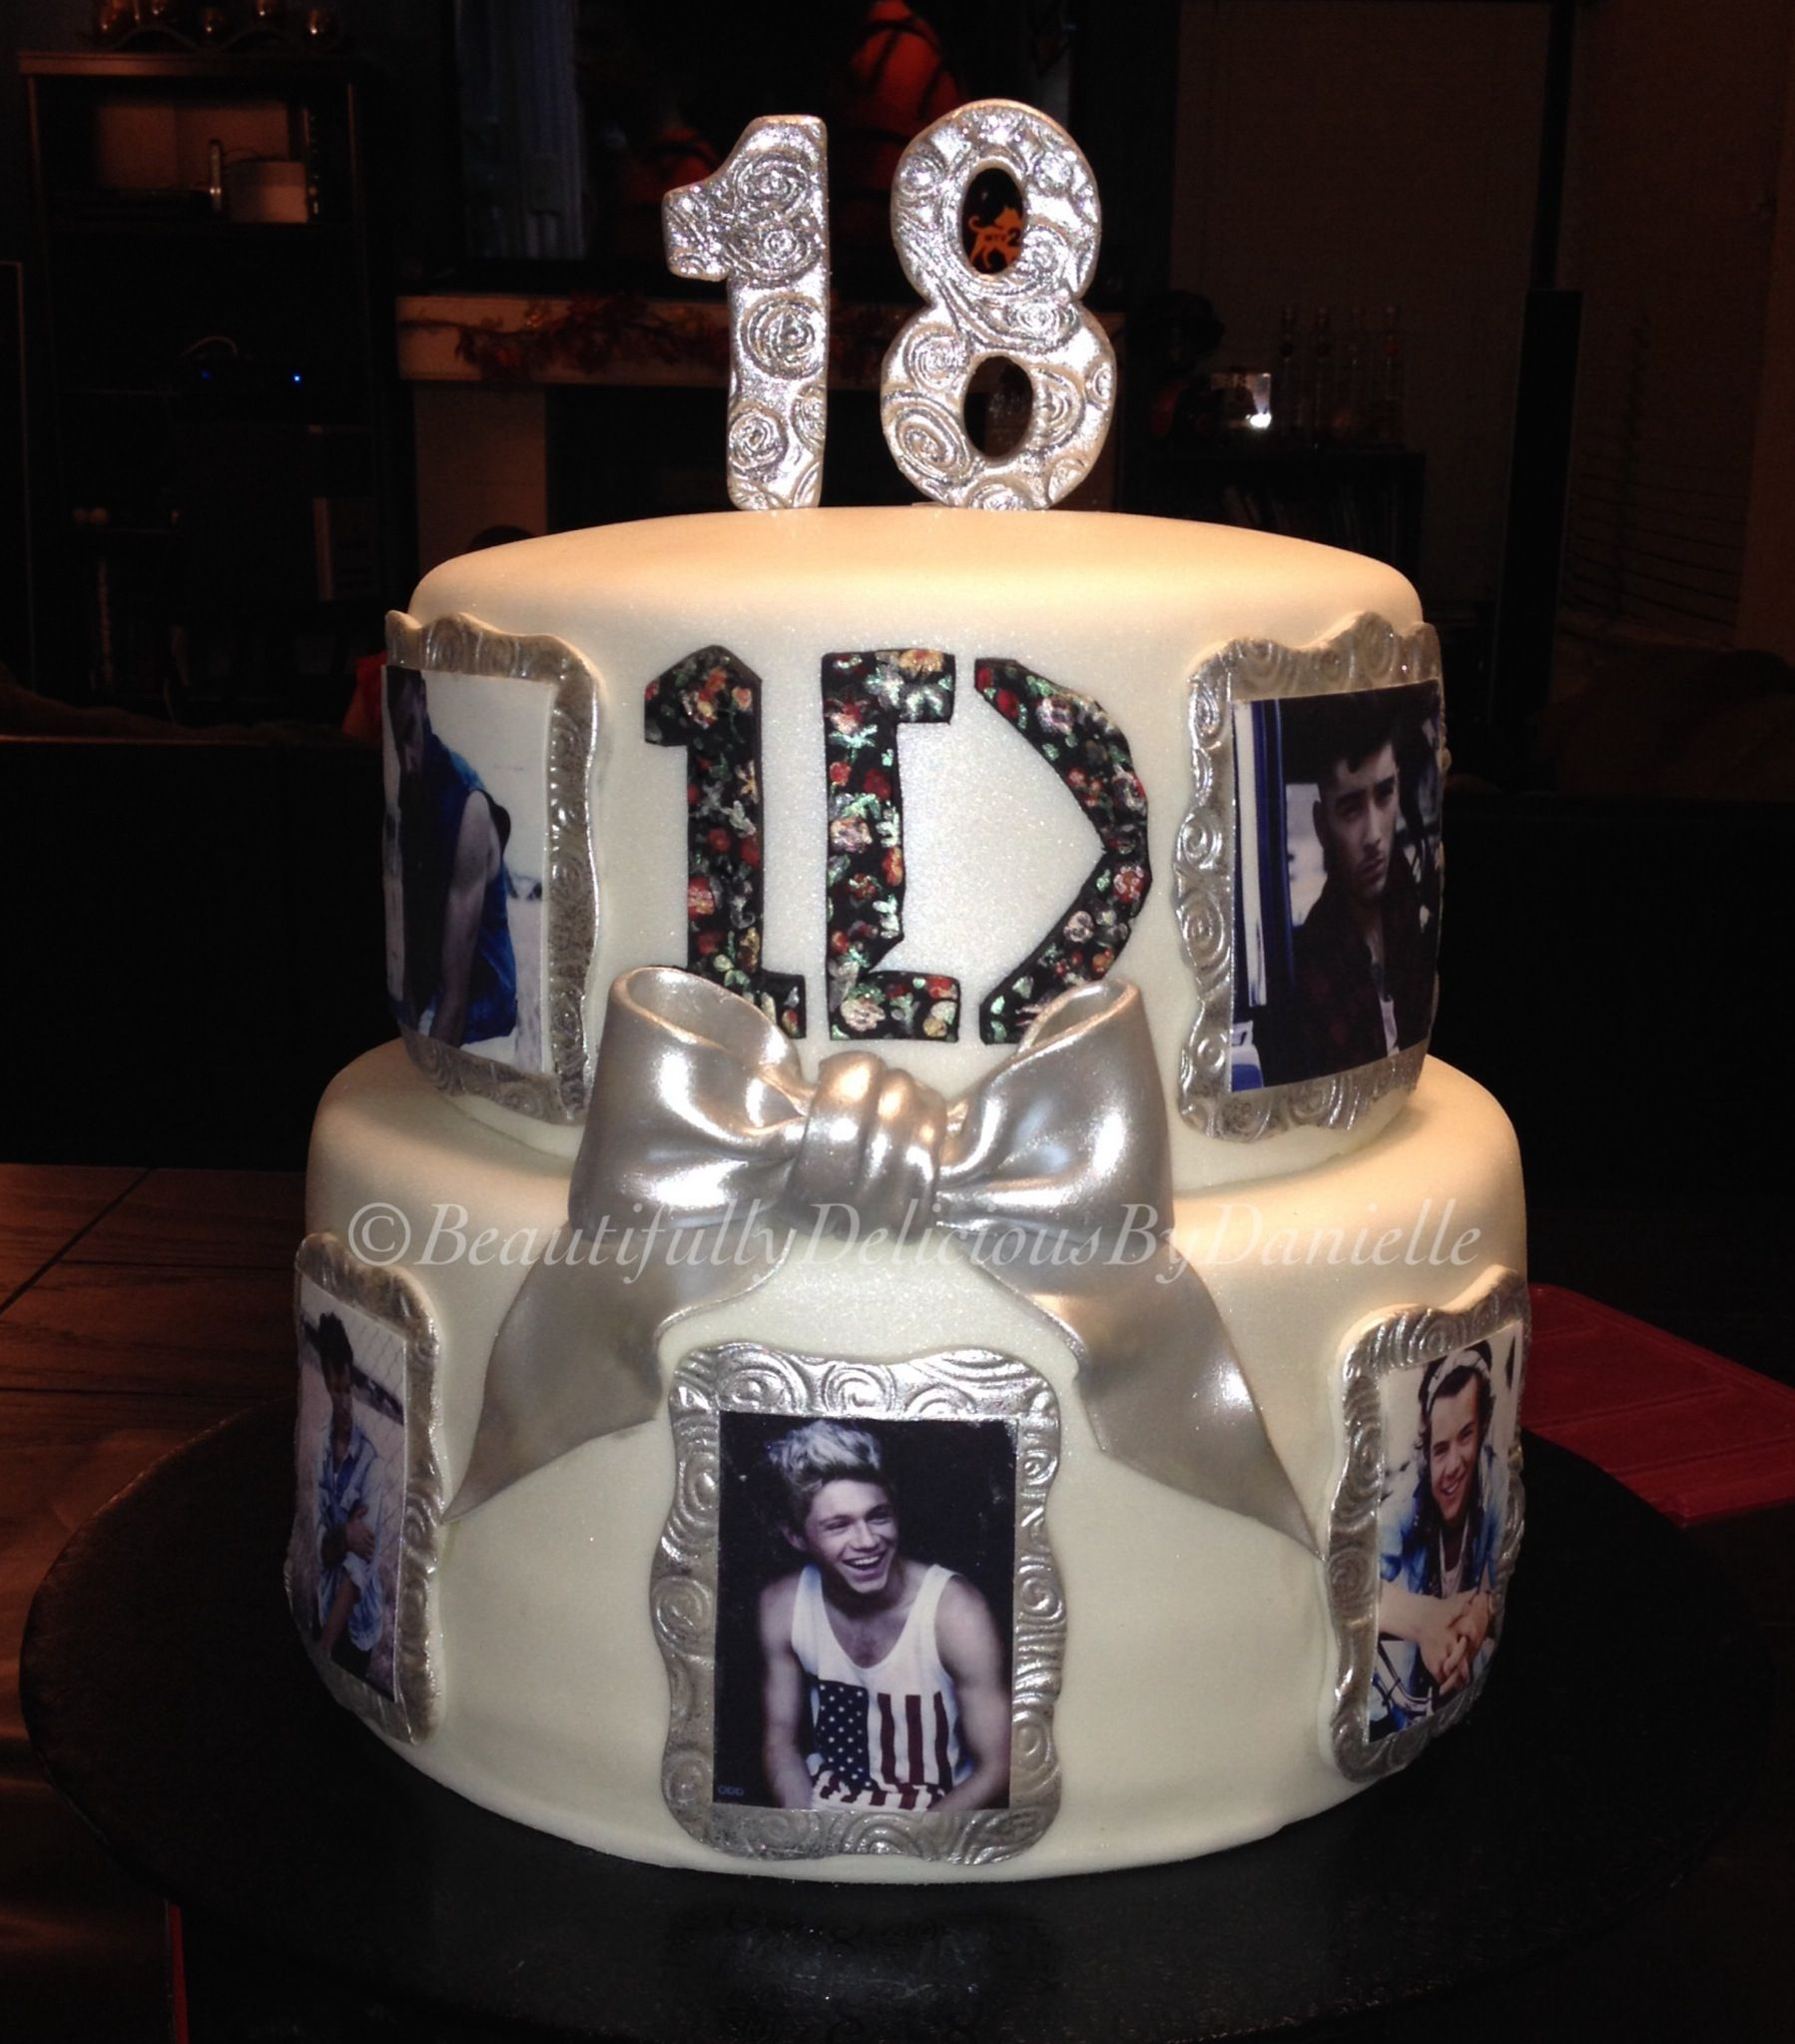 Küche design zitate one direction cake by beautifully delicious by danielle find me on